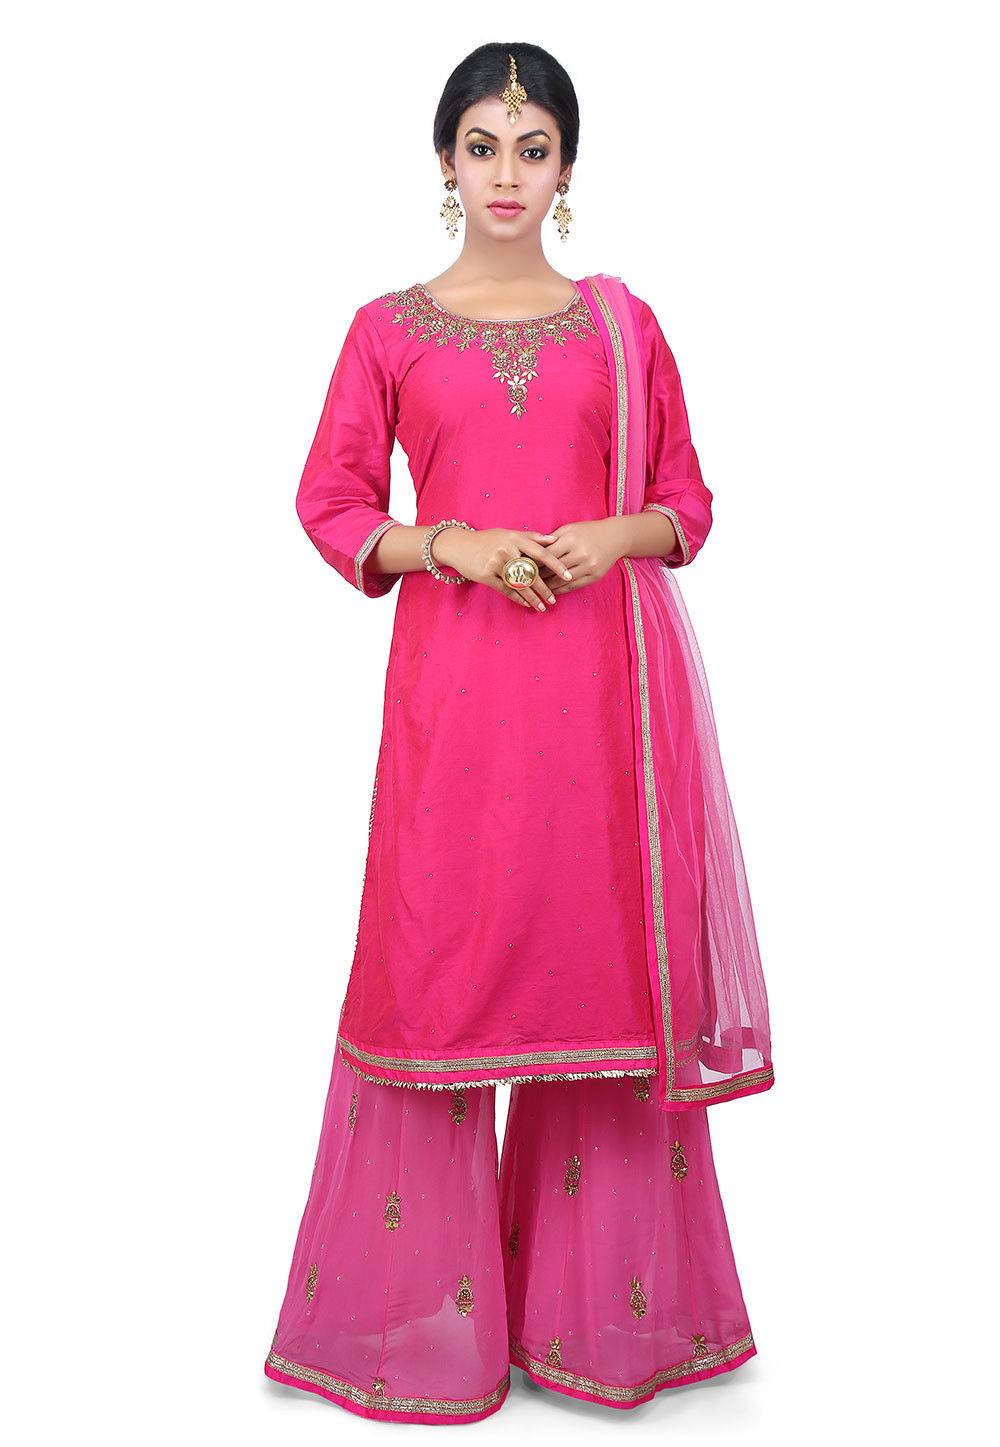 Hand Embroidered Neckline Cotton Silk Pakistani Suit in Fuchsia